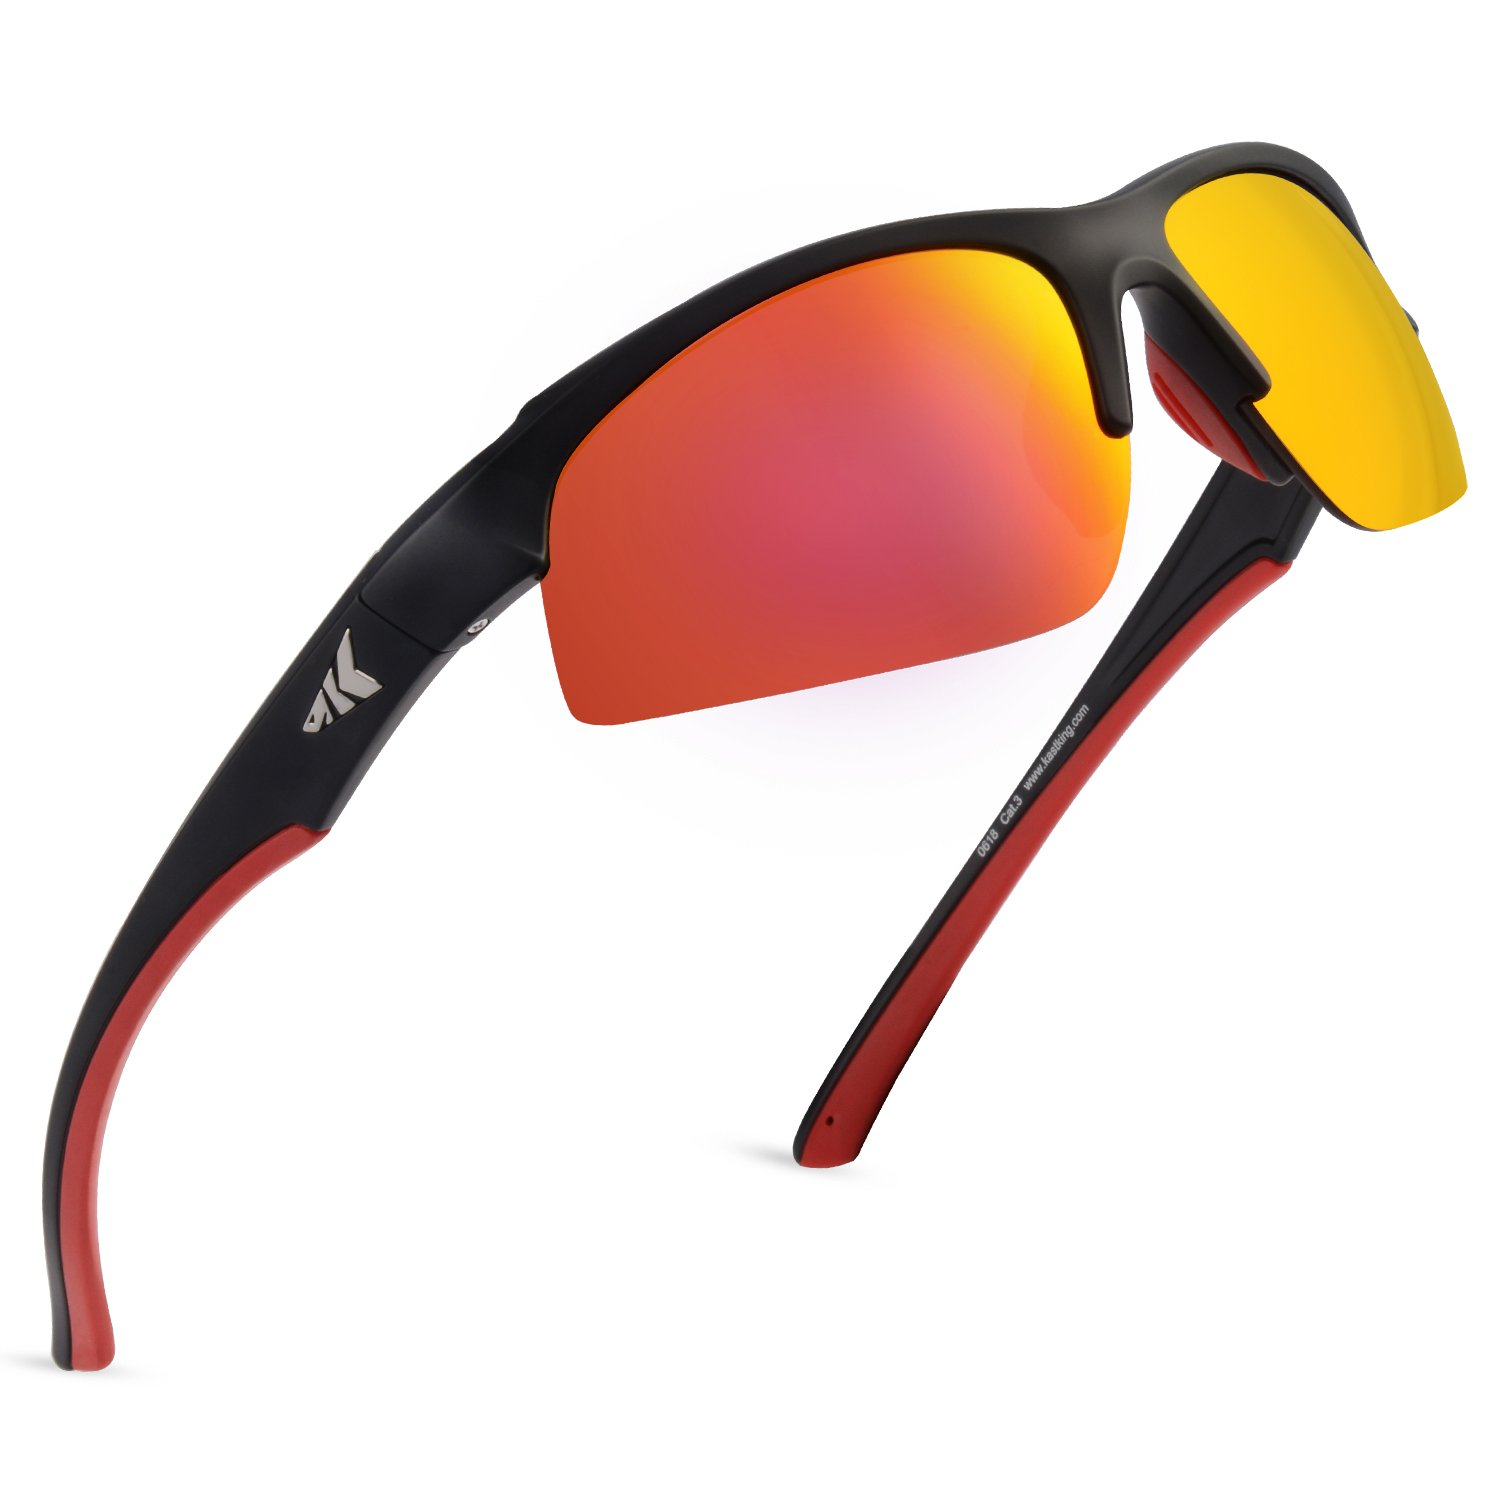 KastKing Cuivre Polarized Sport Sunglasses for Men and Women,Ideal for Driving Fishing Cycling and Running,UV Protection